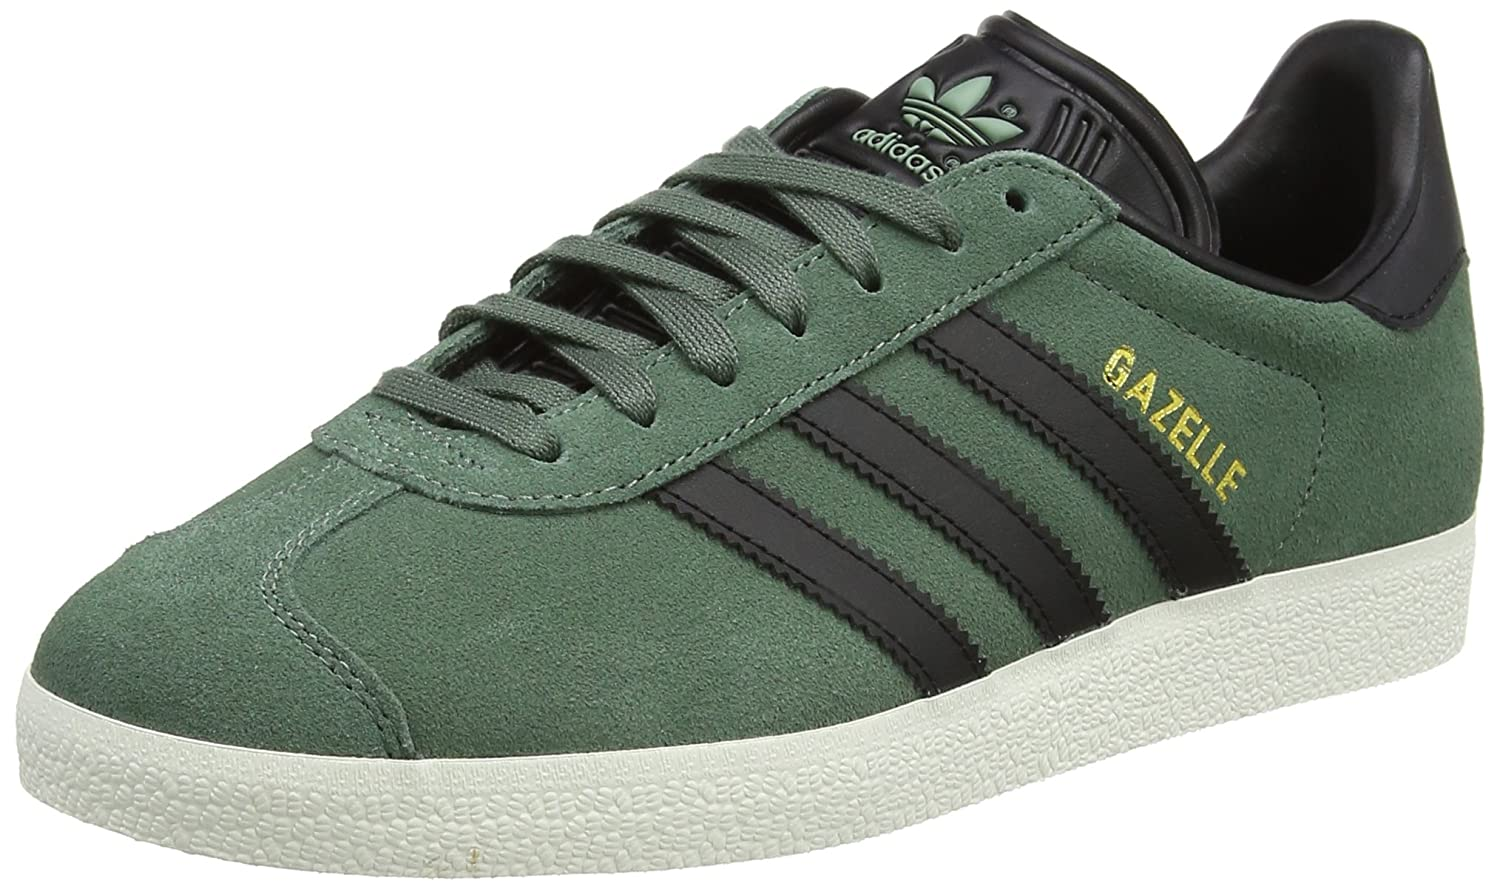 adidas Men's Gazelle Casual Sneakers B076MCTZQ7 9.5 D(M) US|Green